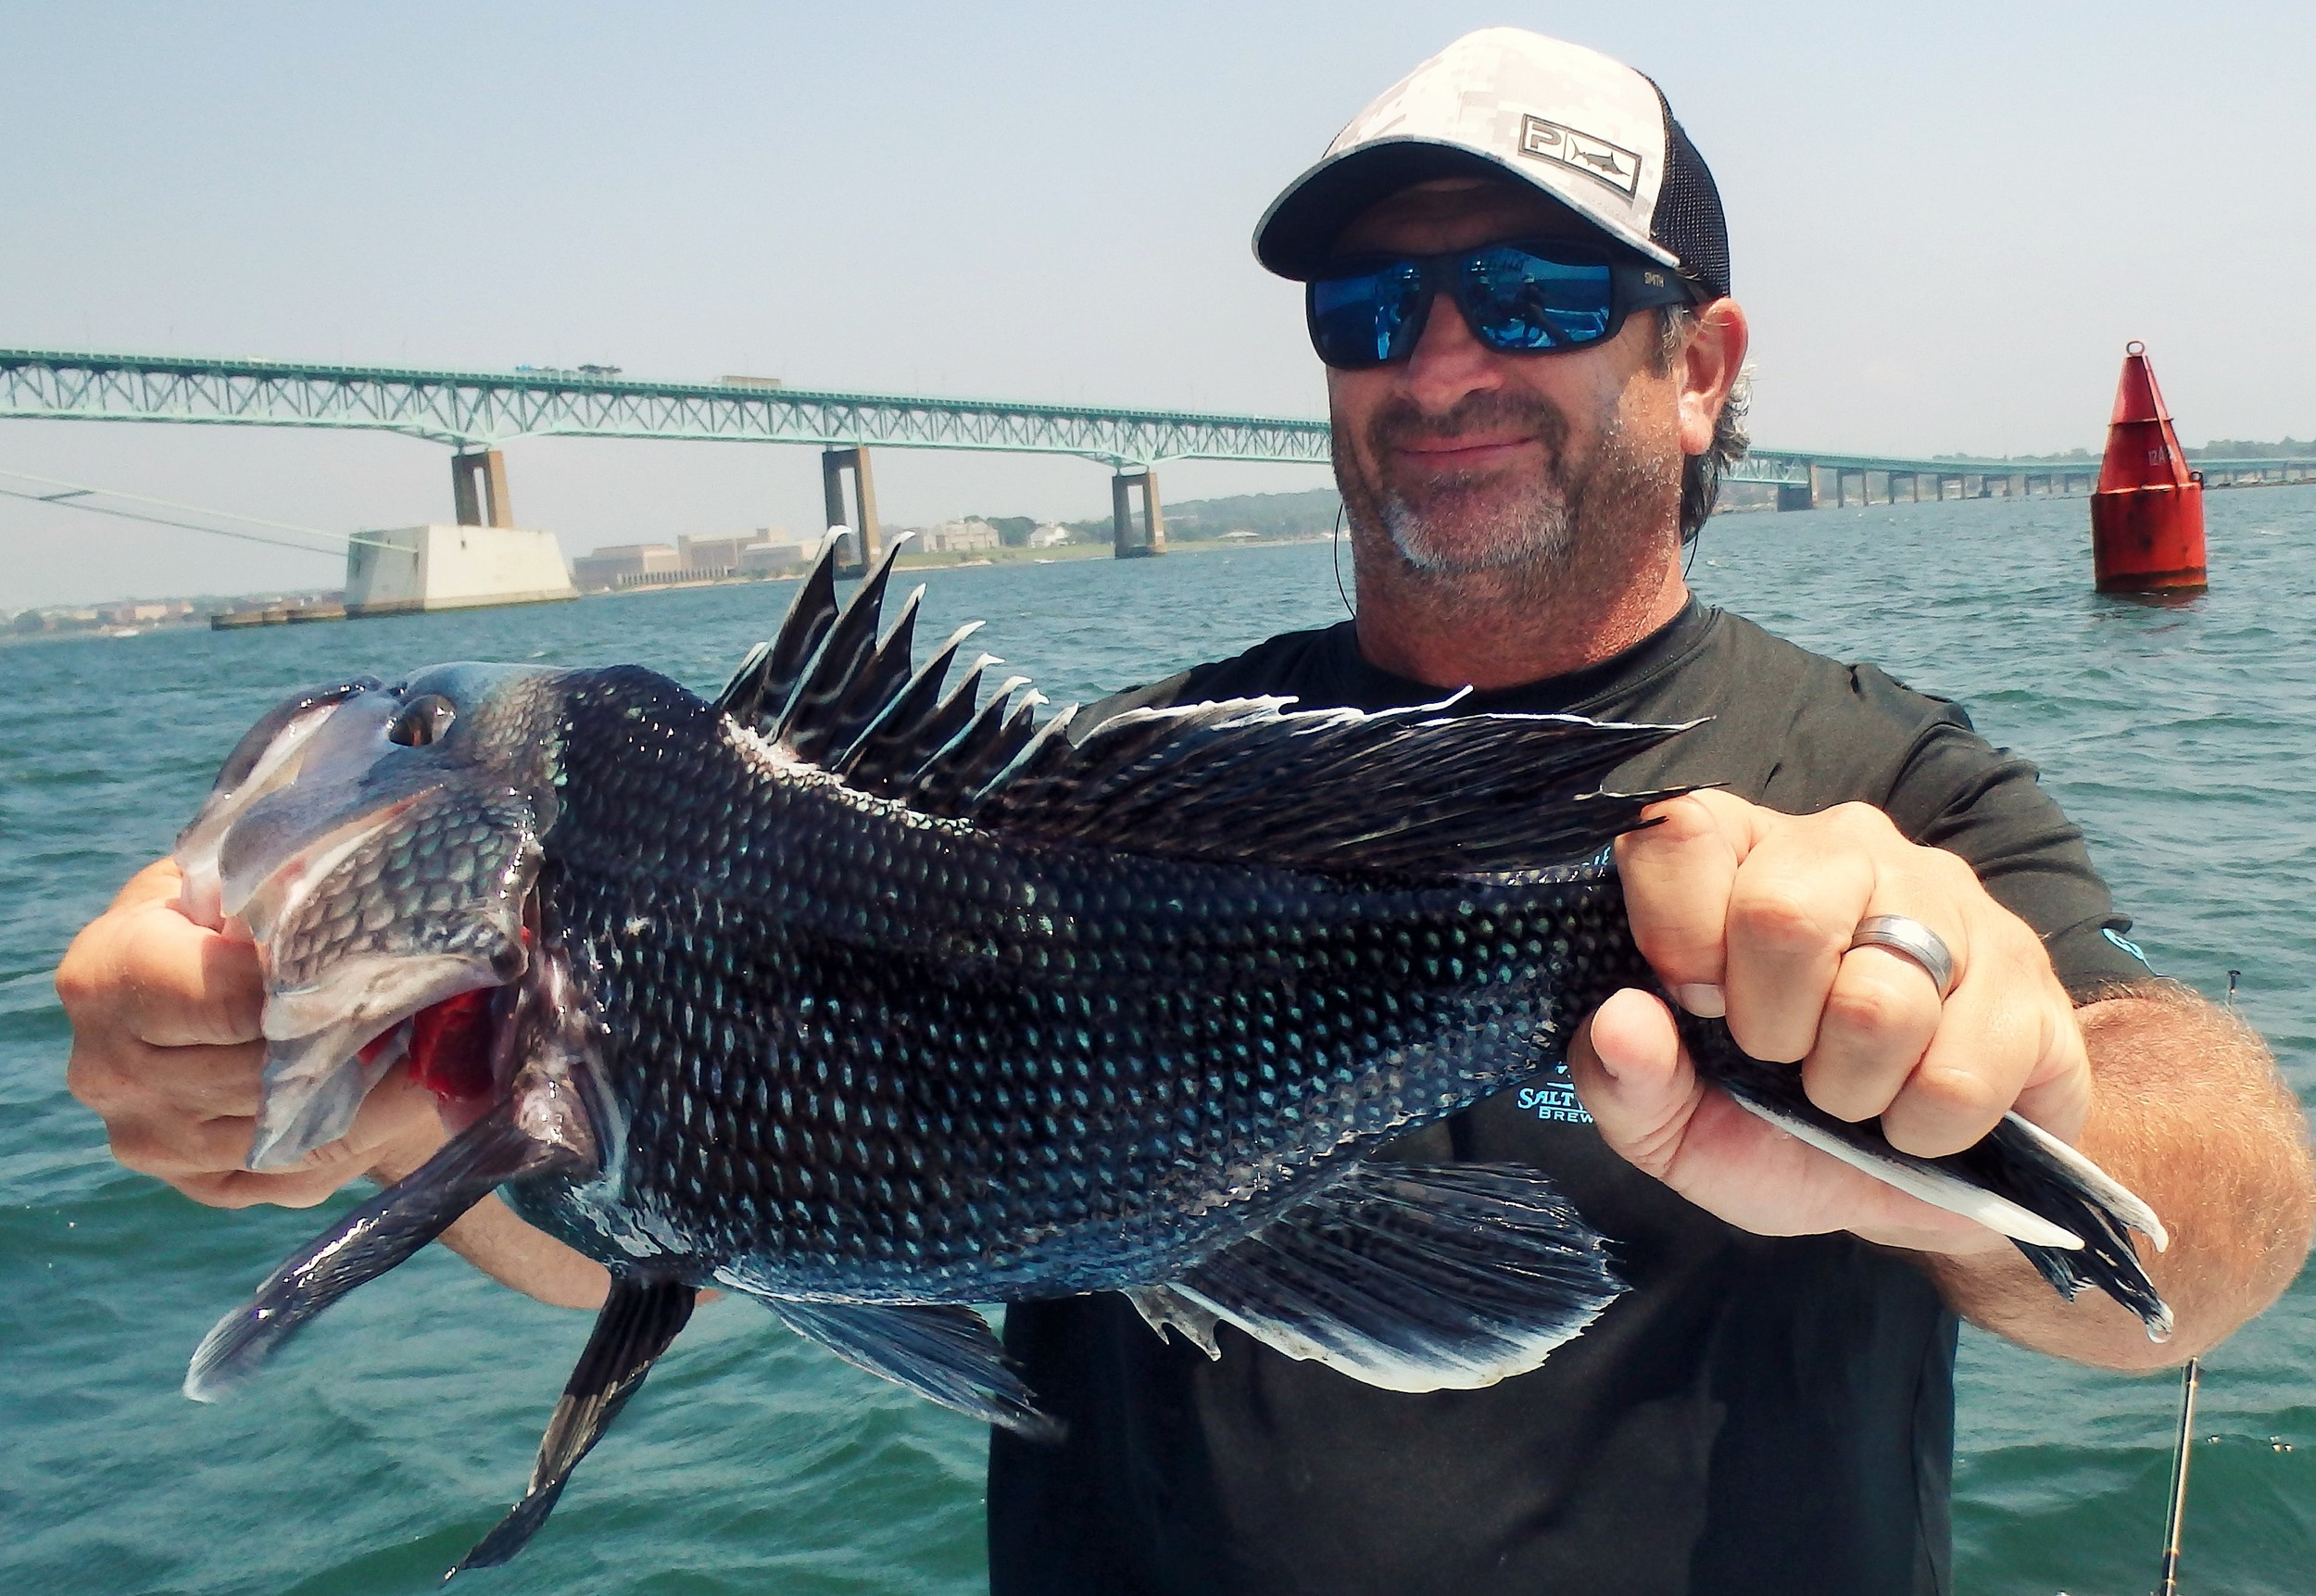 Black sea bass like this one caught in Narragansett Bay will likely not be able to be taken in late May and June this year as the RI Marine Fisheries Council recommended a late fall and winter season rather than a spring season.